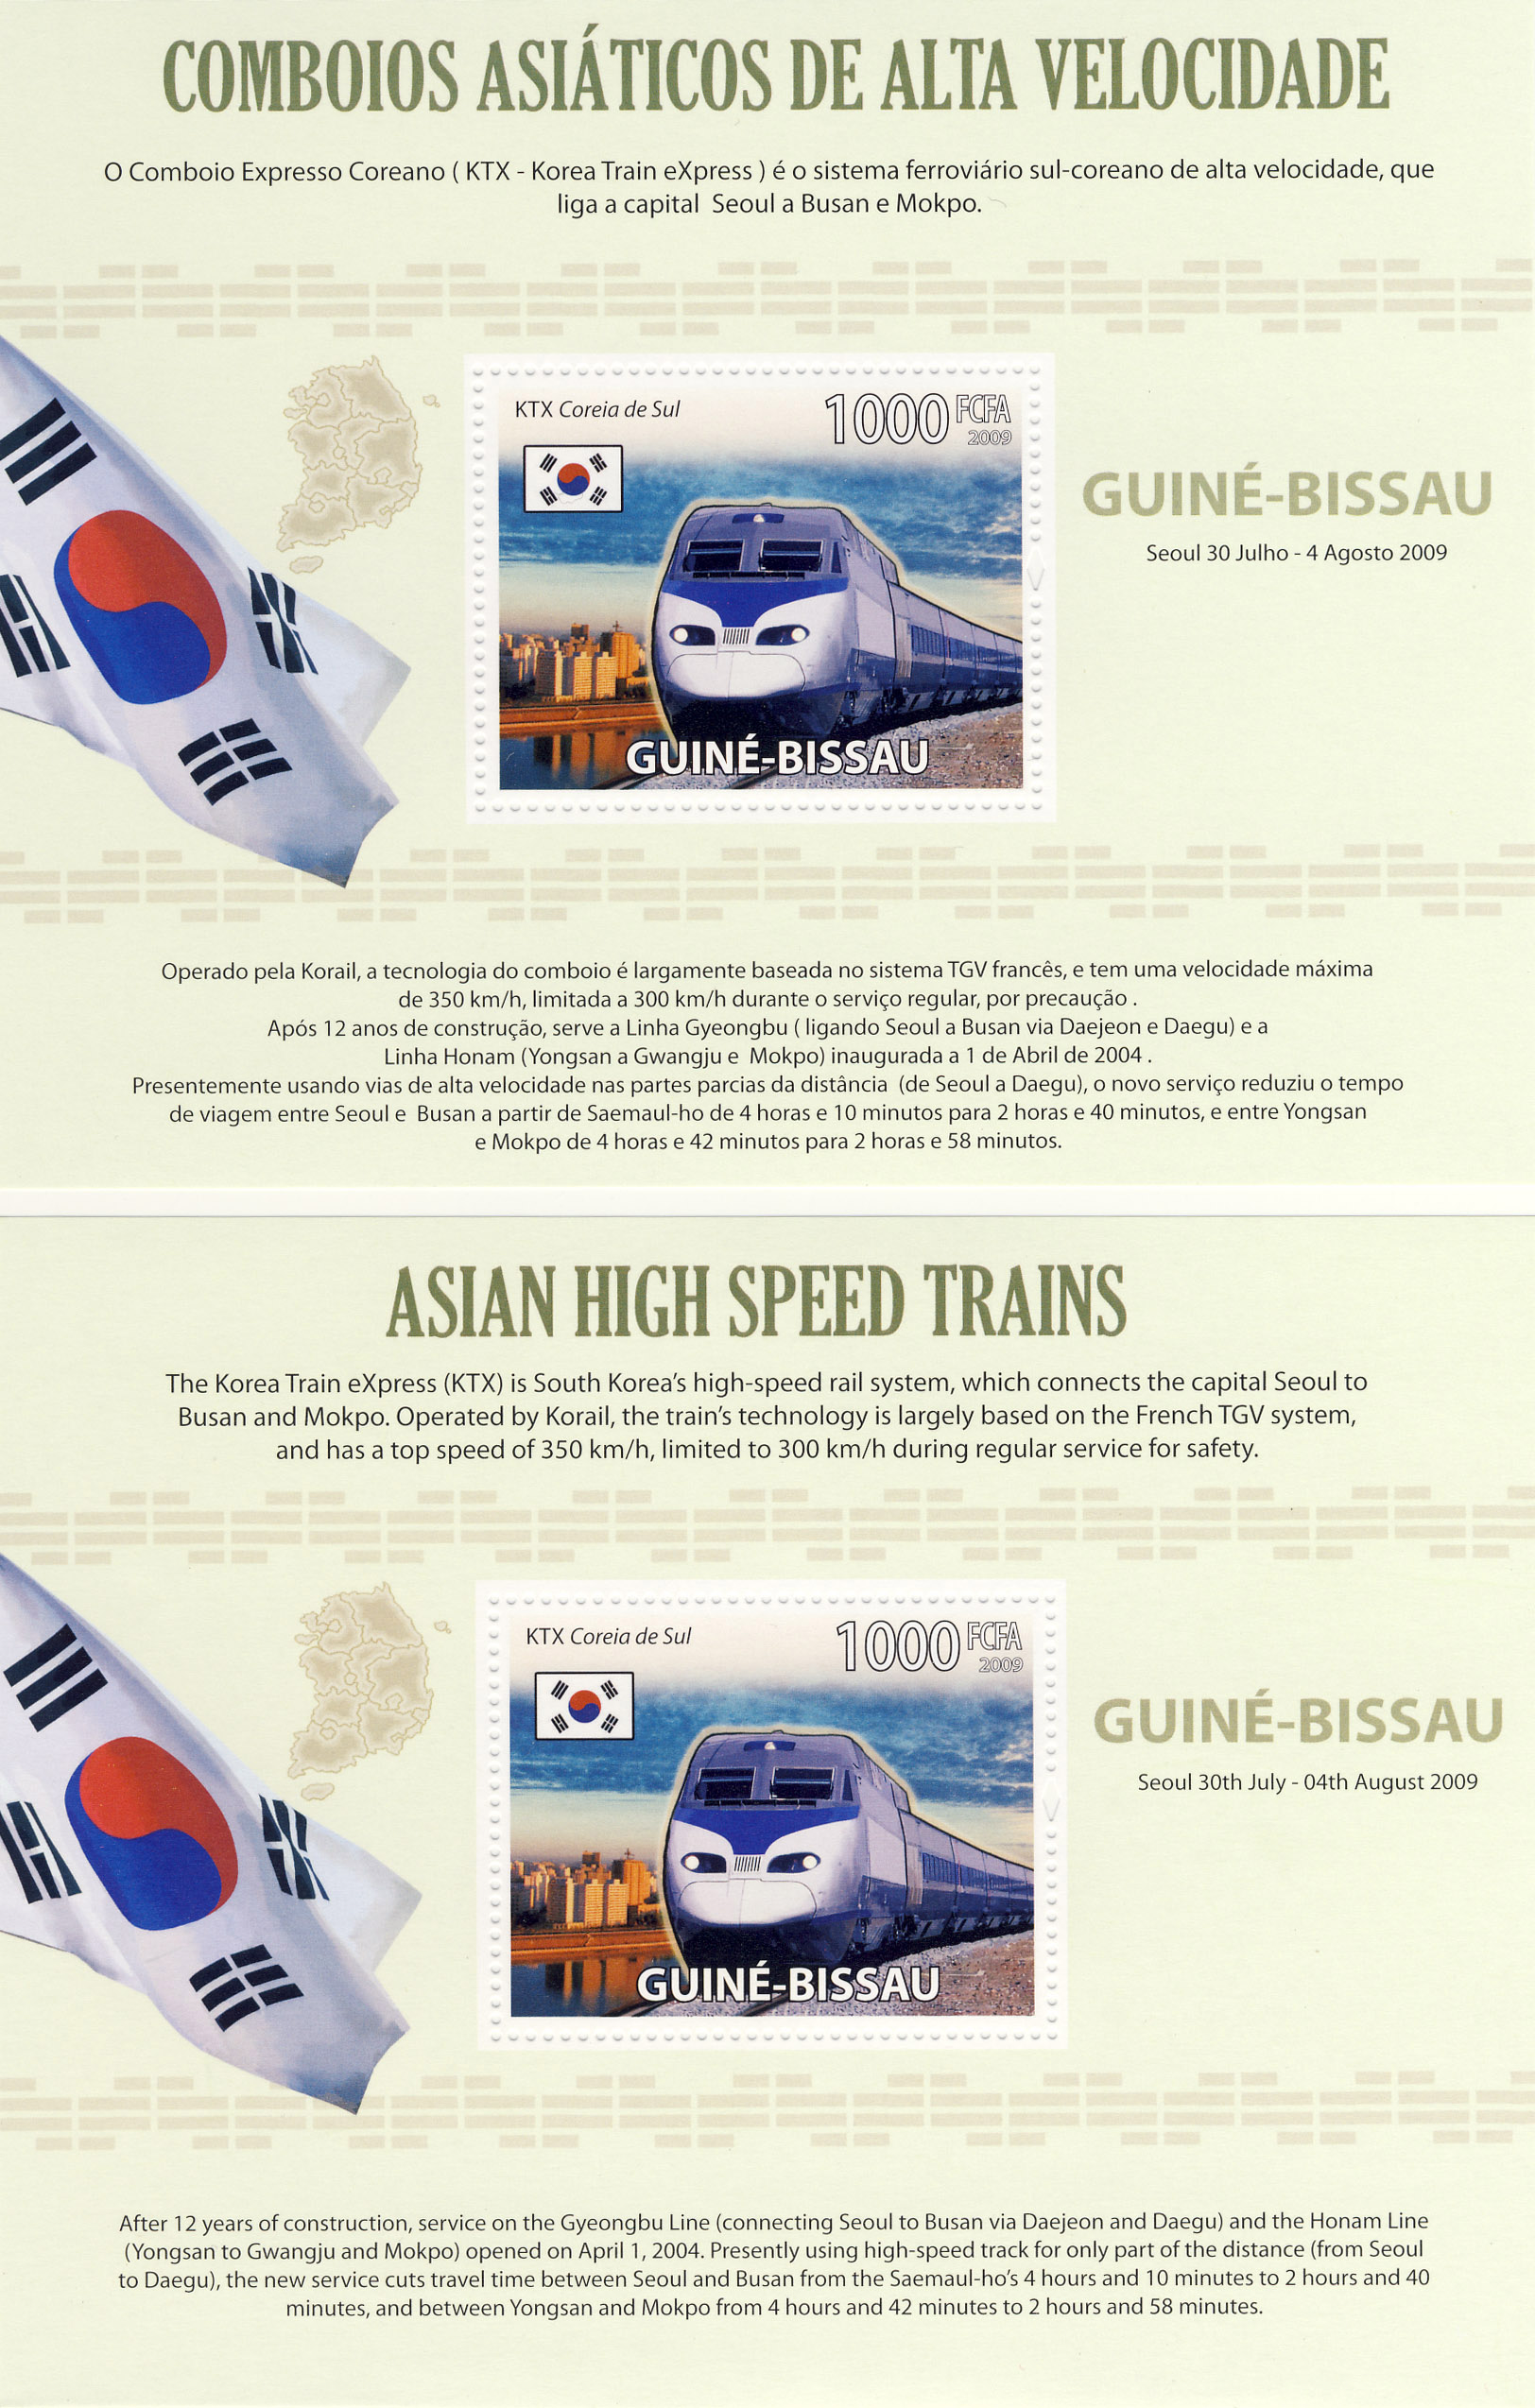 Asian High Speed Trains / English s/s and Portuguese s/s - Issue of Guinée-Bissau postage stamps